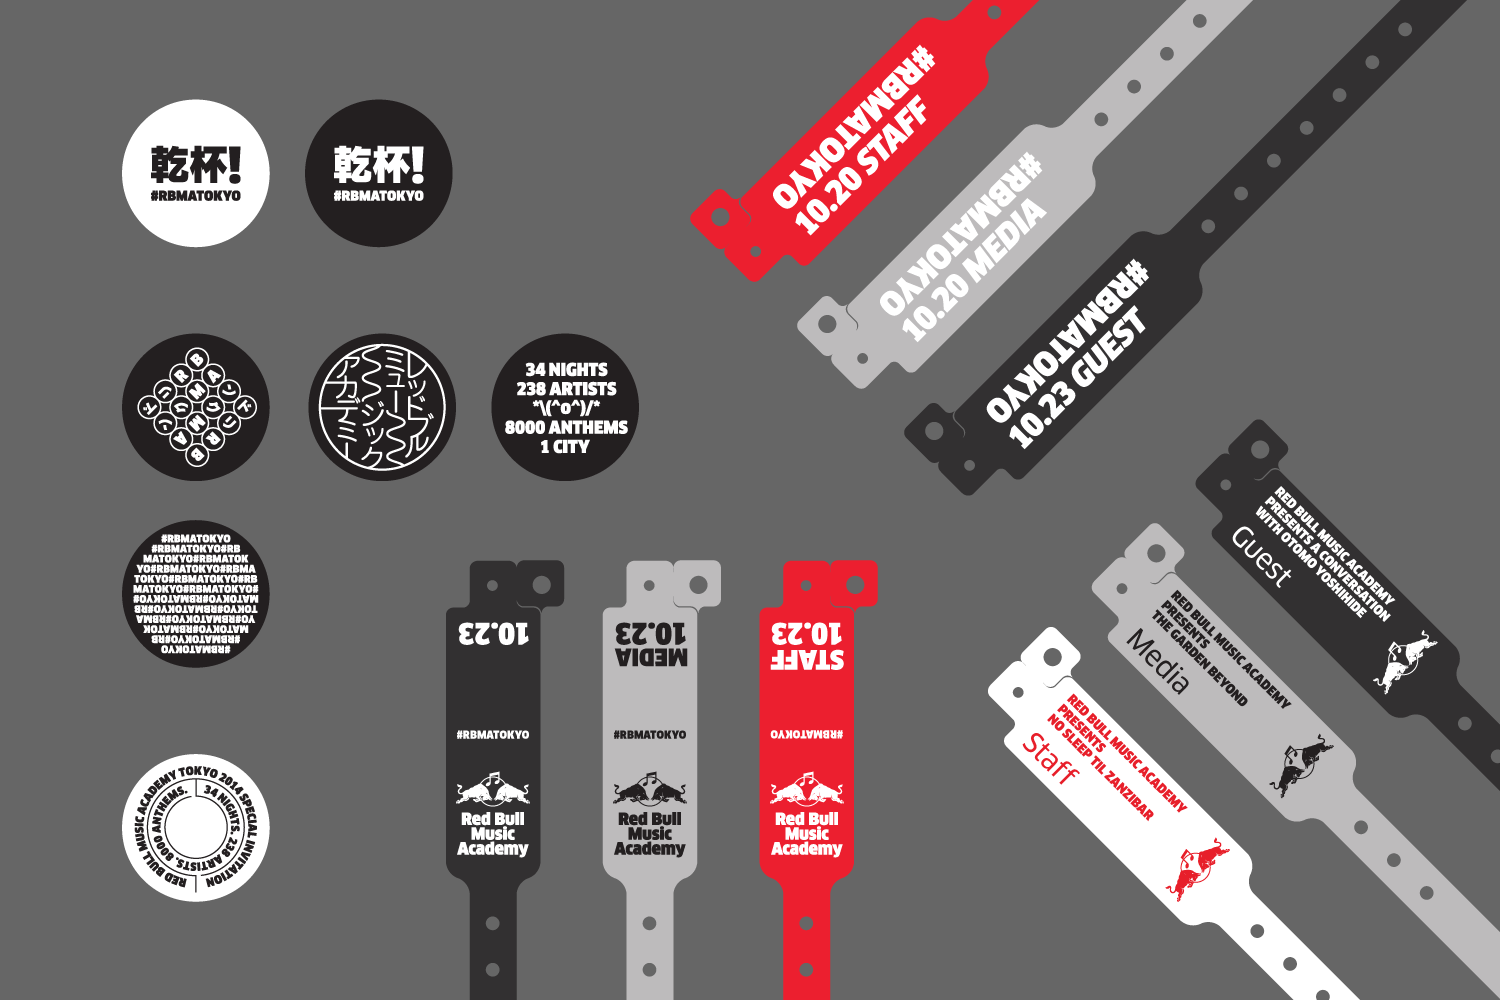 Various badge, sticker, and wristband designs and proposals